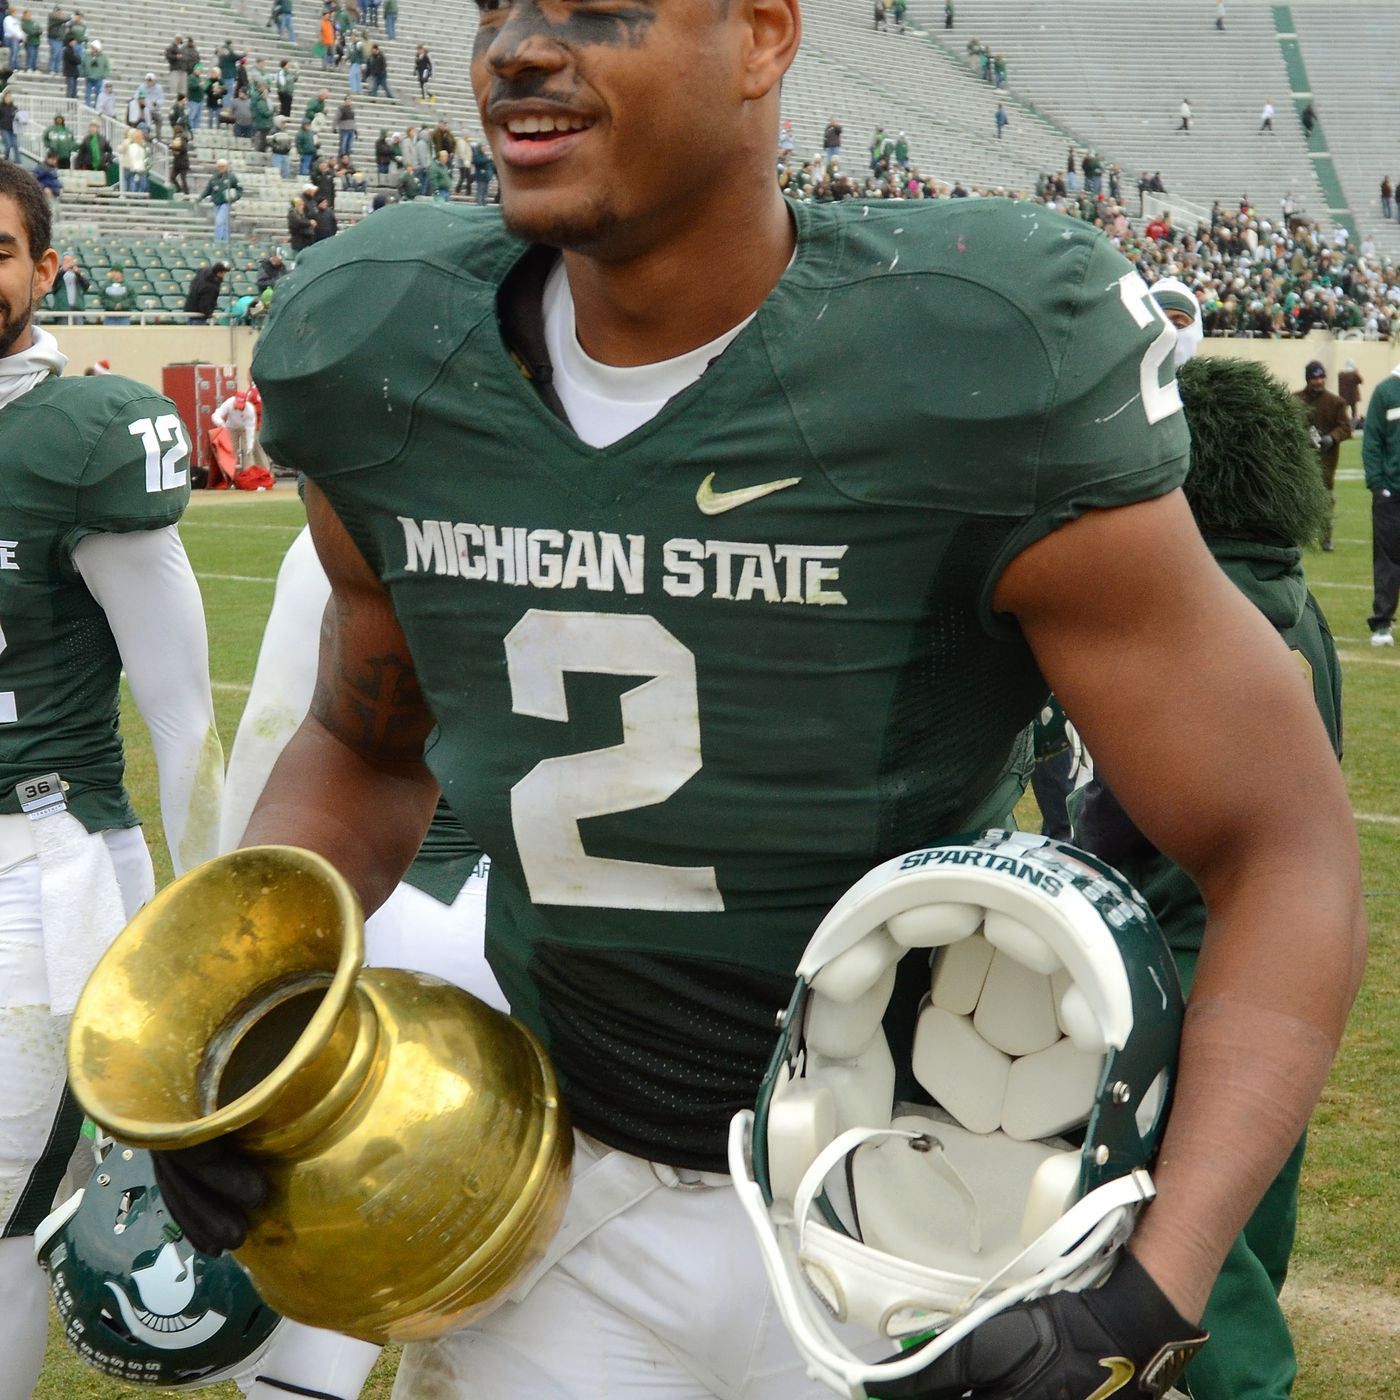 bc03c77109 Why Michigan State-Indiana s rivalry trophy is a spittoon - SBNation.com